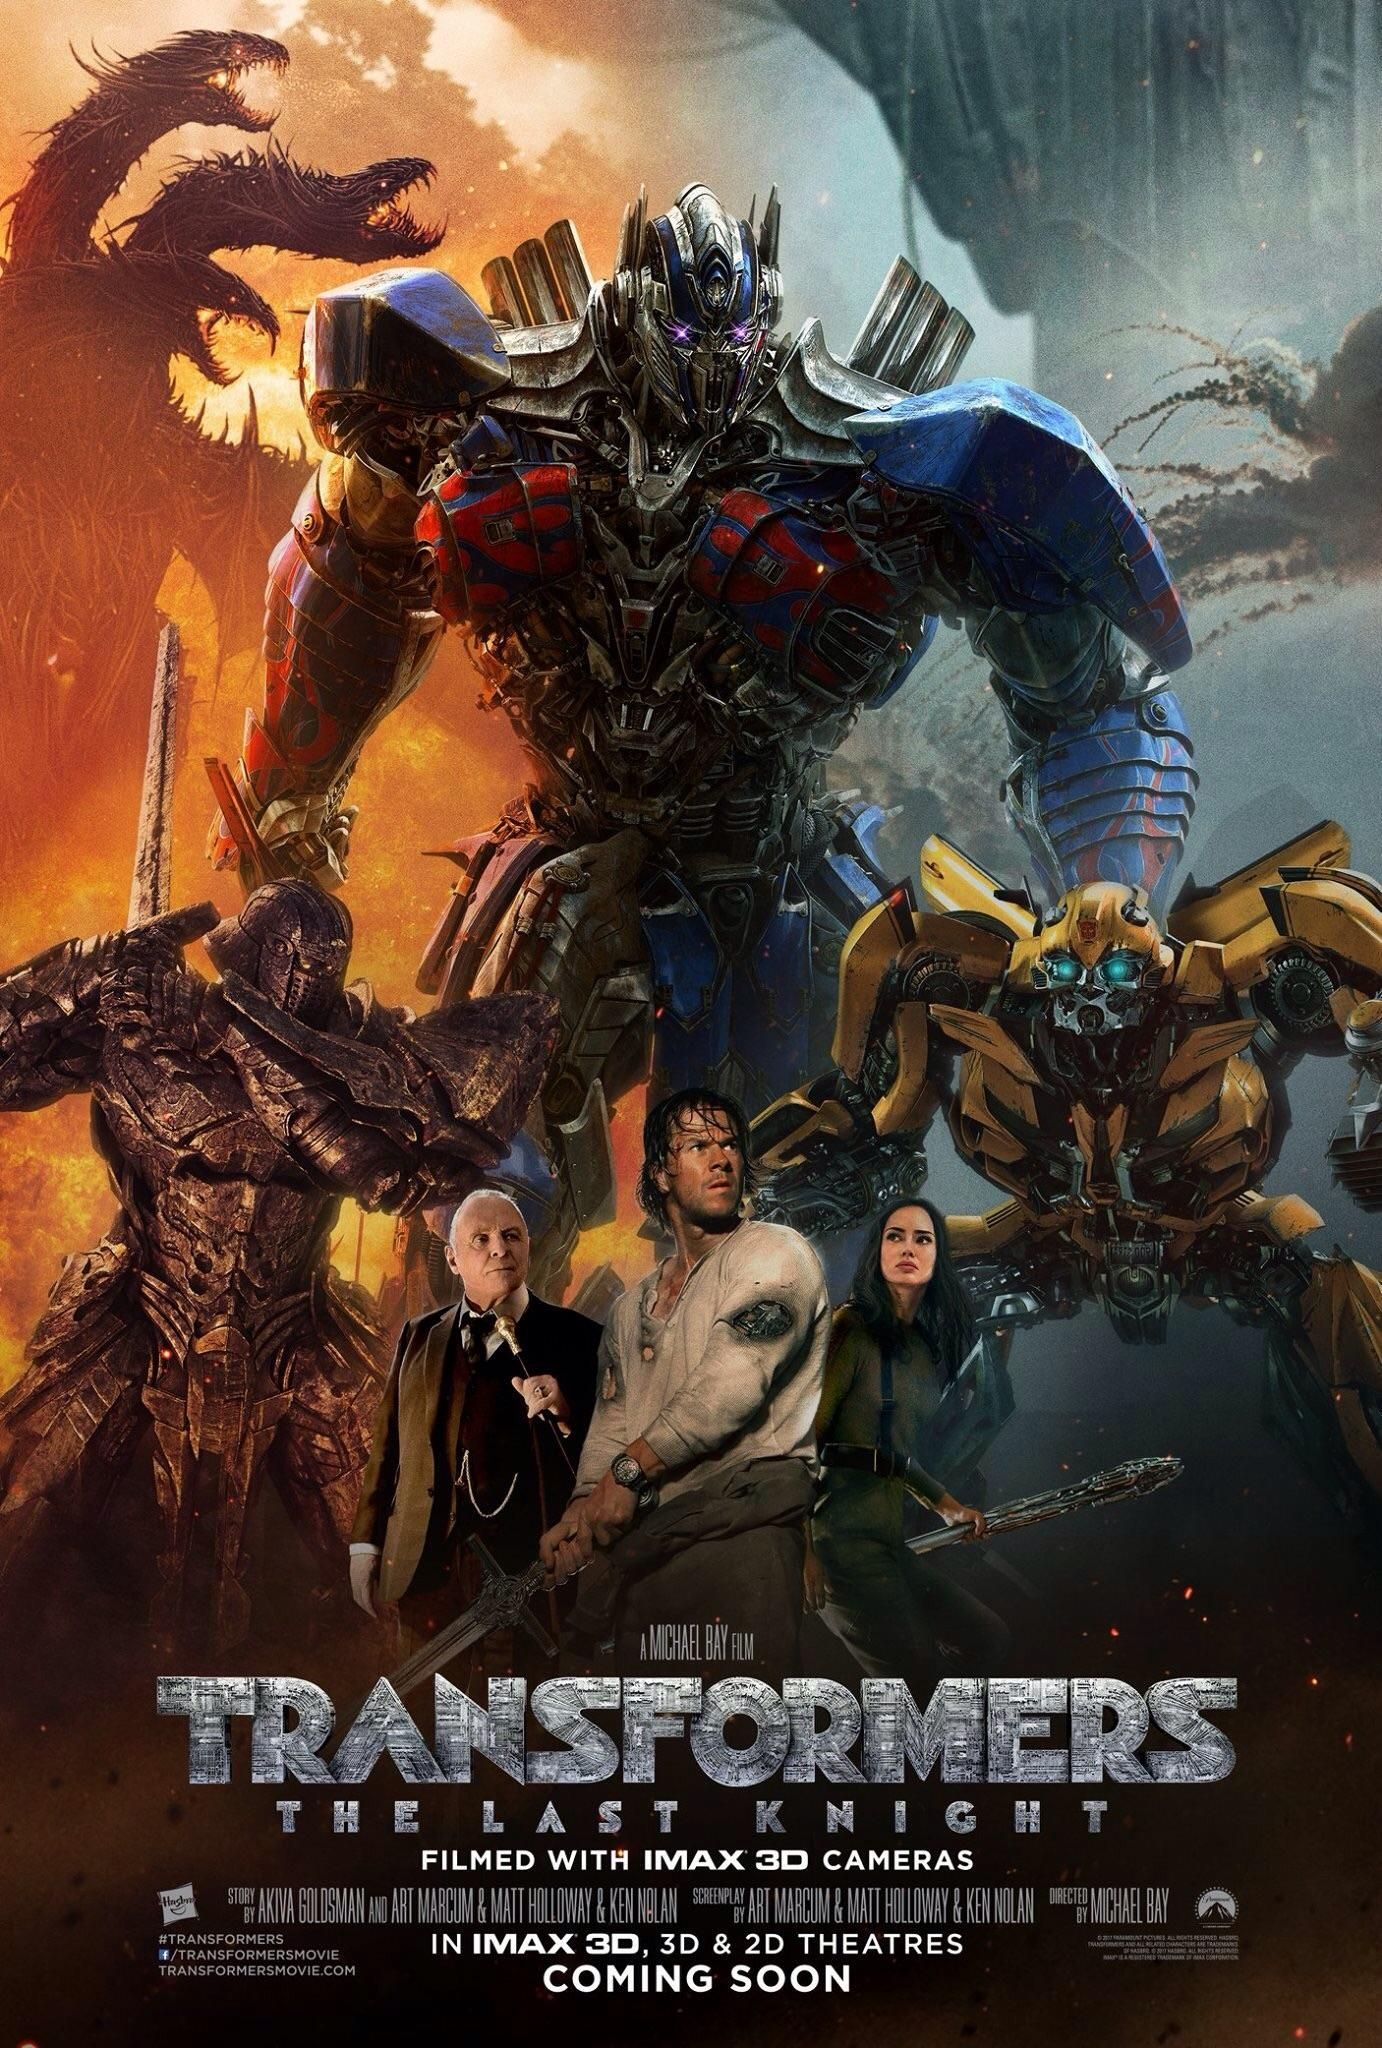 Latest Poster For Transformers The Last Knight If The Movie Is As Bad As This Poster We Are More Doomed Tha Transformers 5 Pelicula Transformers Transformers